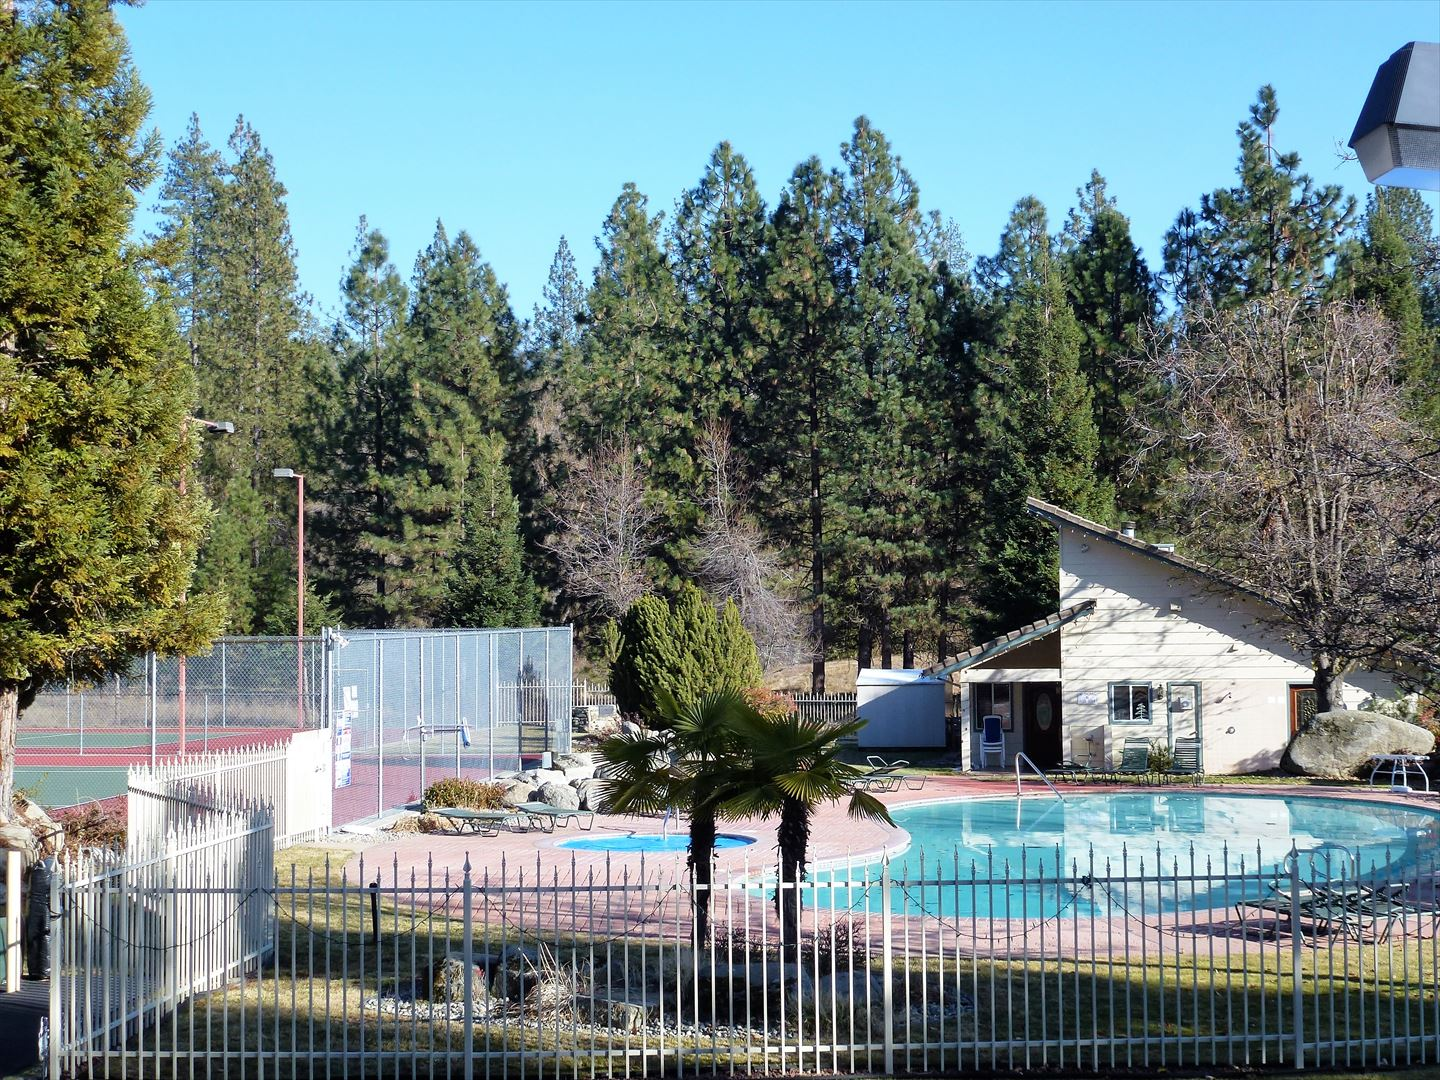 Views of the community pool, spa, and tennis courts surrounded by mountains and tall, majestic trees.